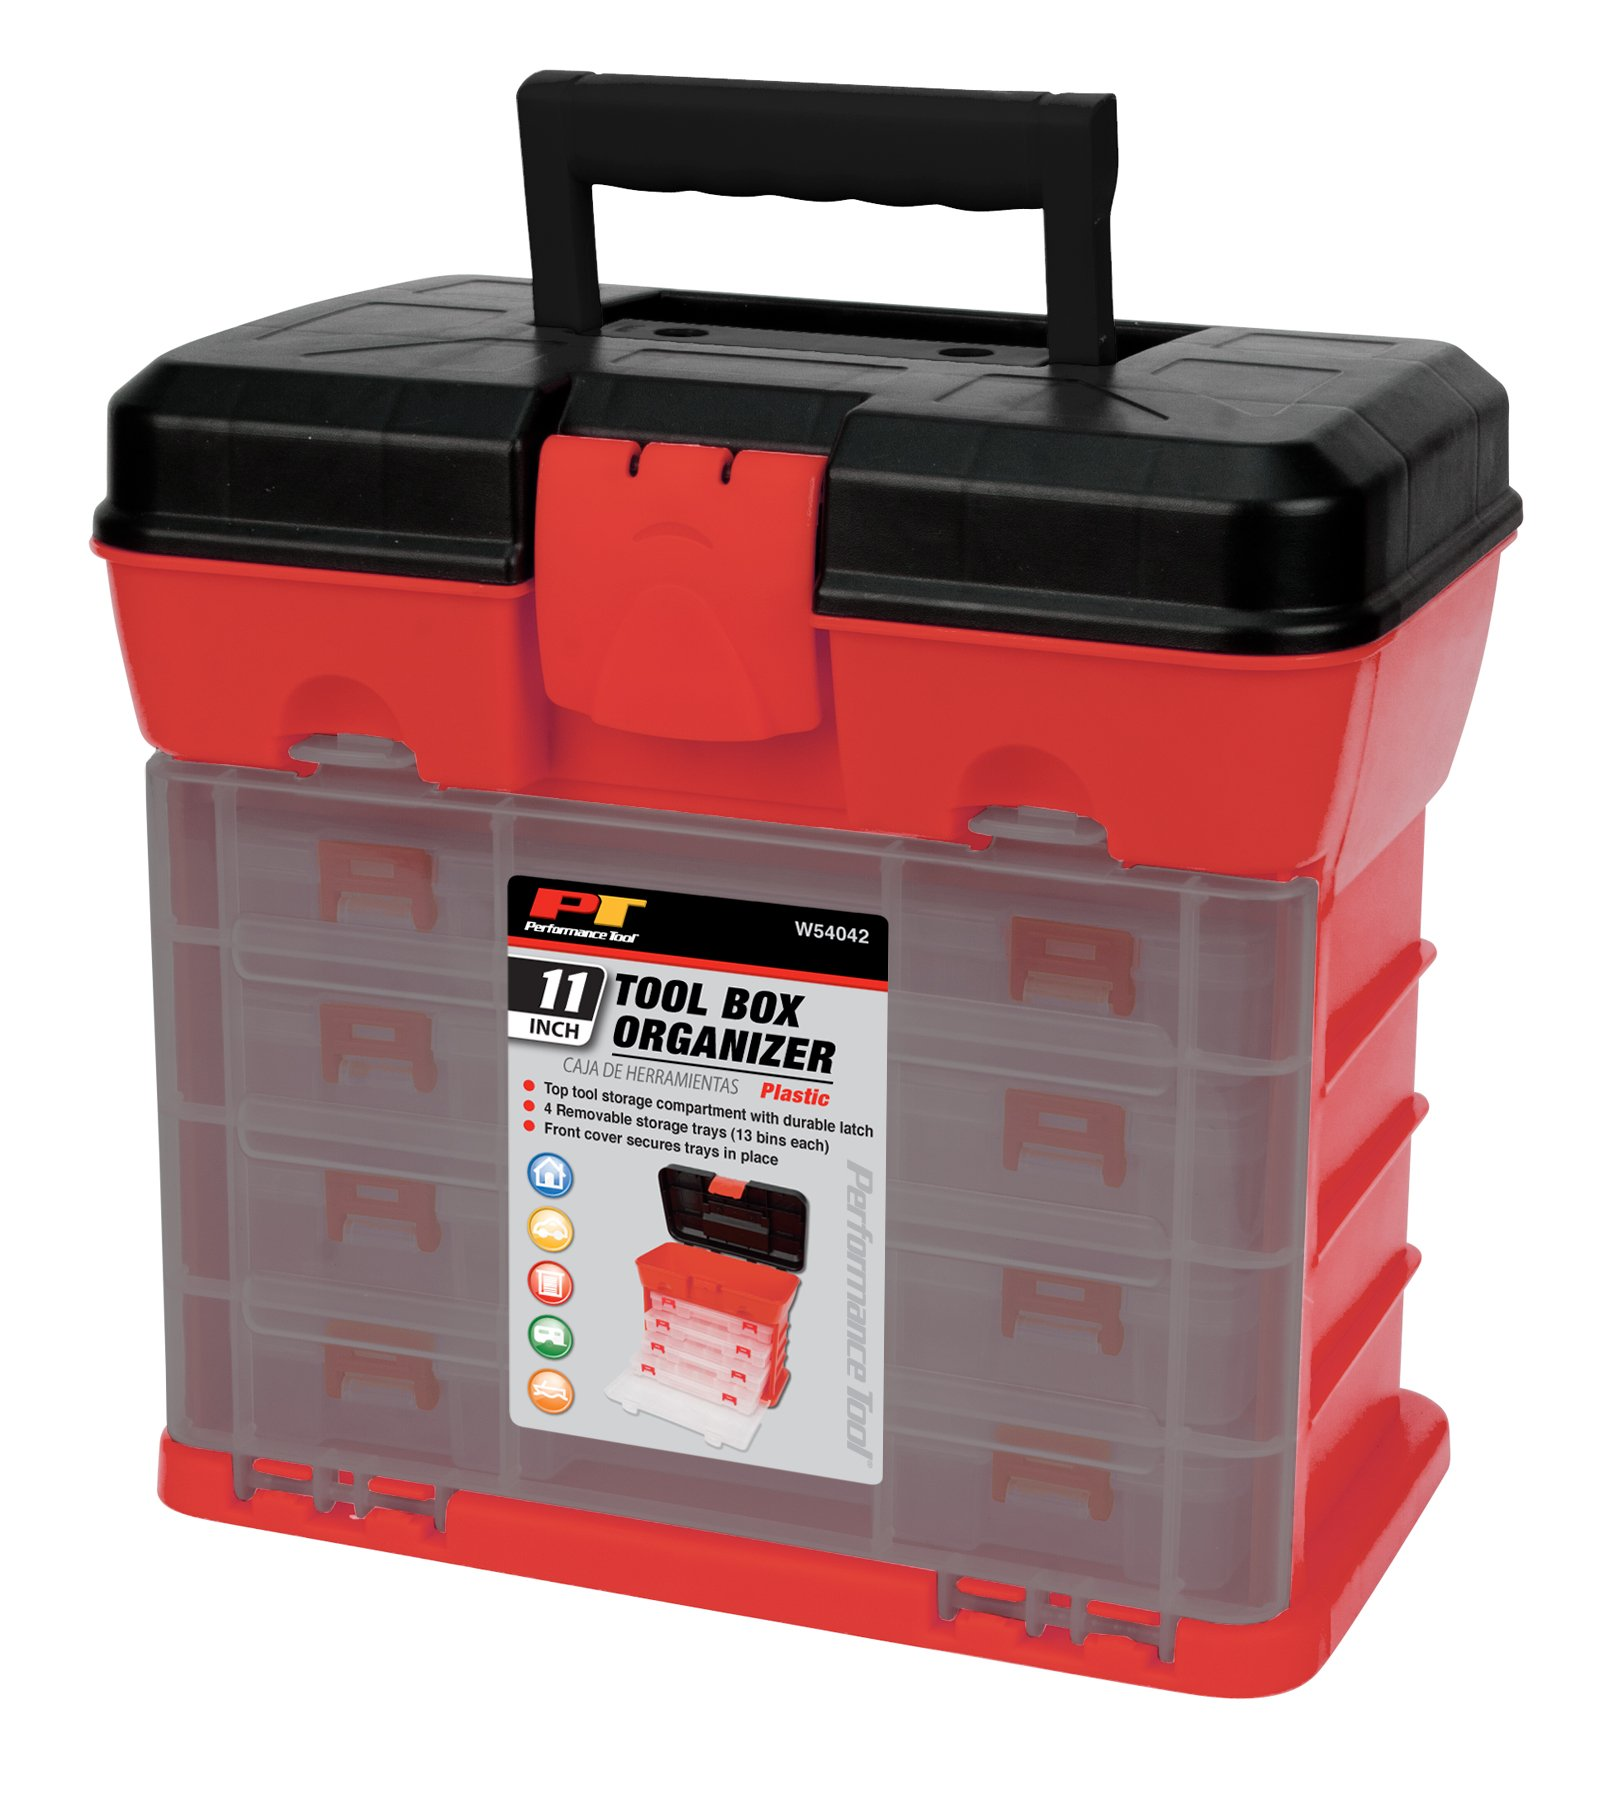 Performance Tool W54042 Plastic Rack System Tool Box with 4 Organizers